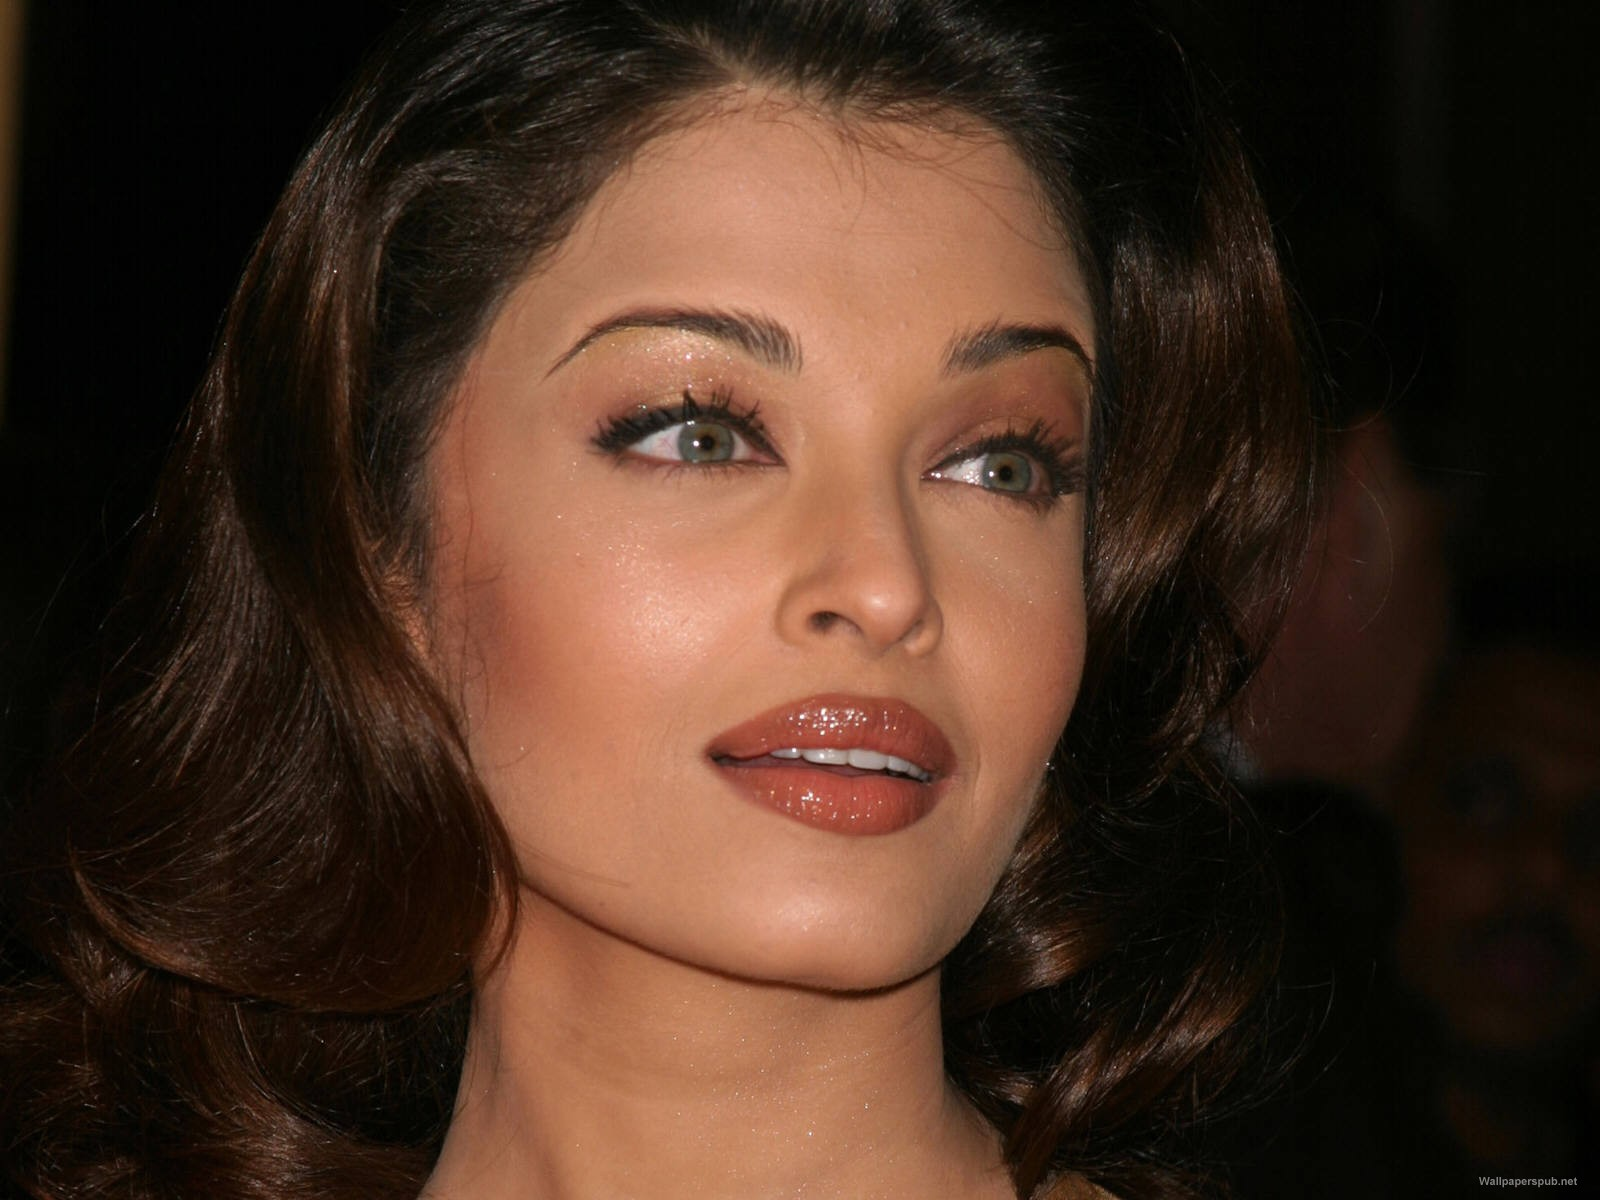 Aishwarya Rai Bachchan: Beauty through the ages